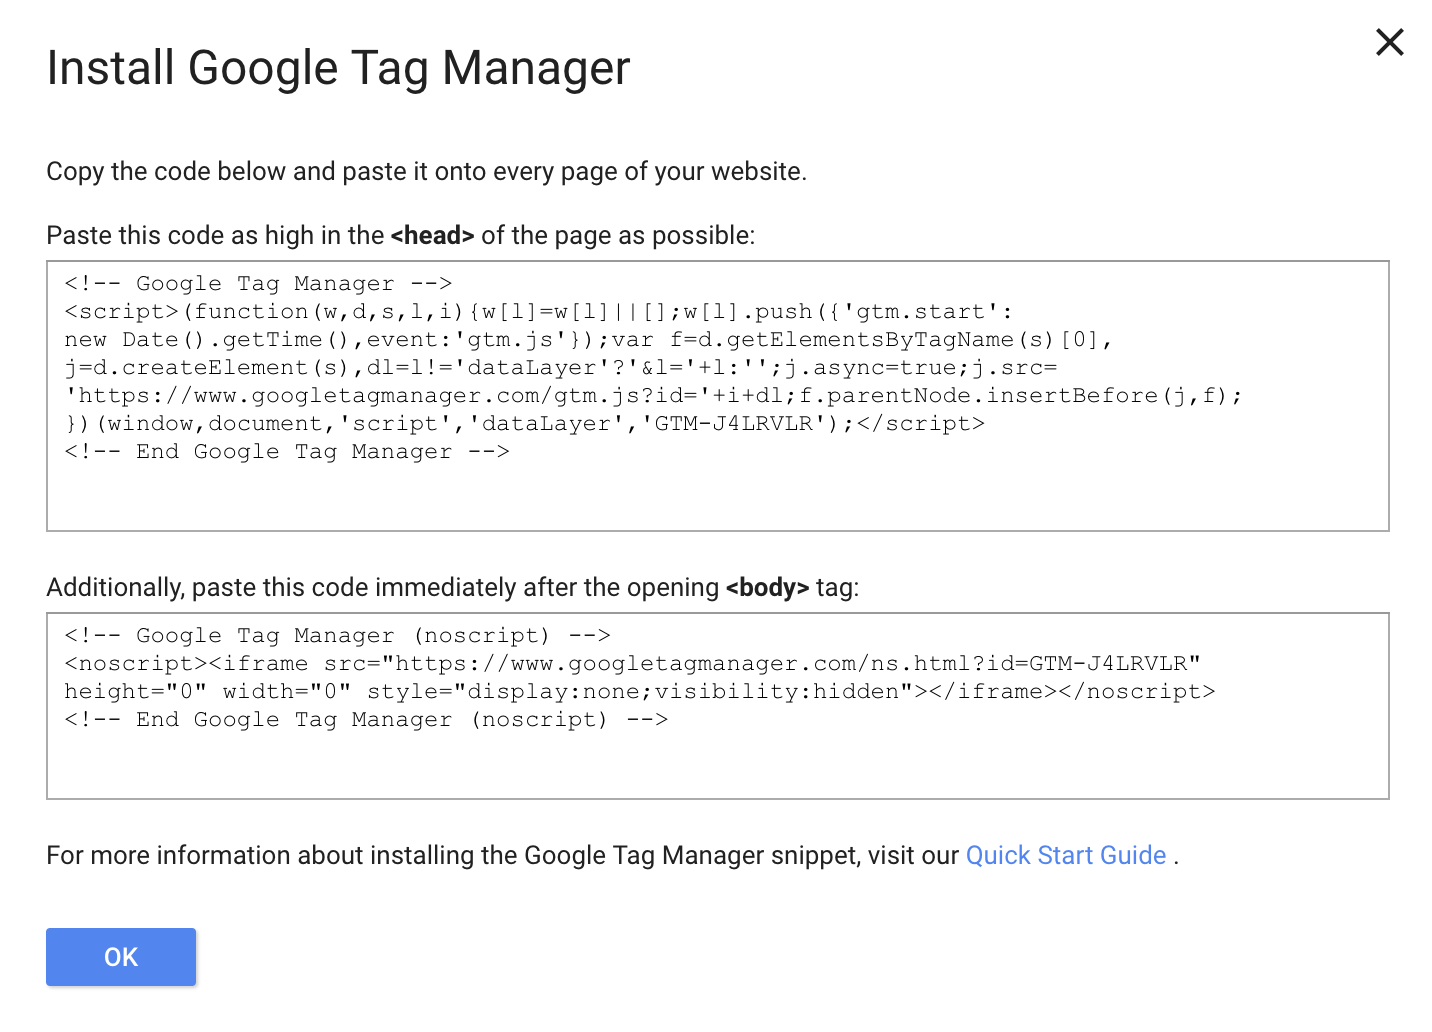 Google Tag code instructions and codes